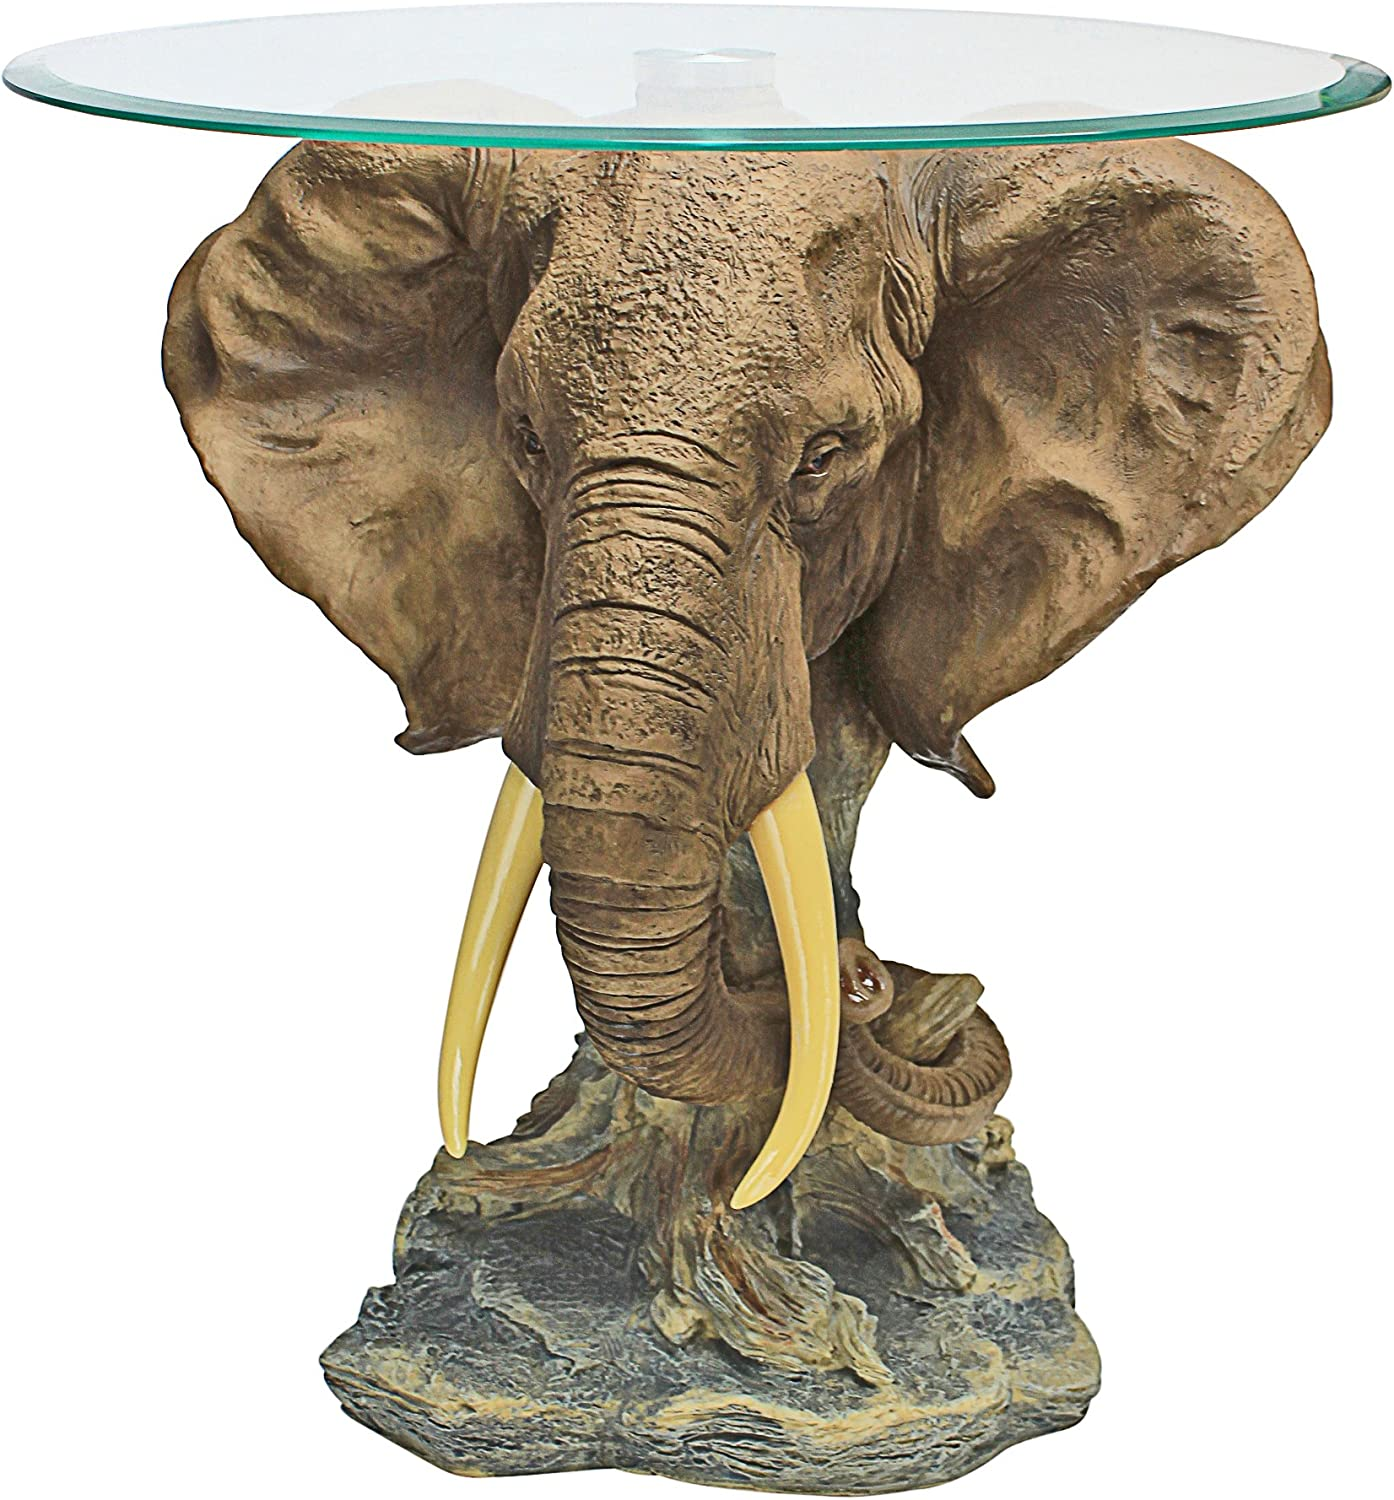 Design Toscano Lord Earl Houghton S Trophy Elephant Glass Topped Table Amazon Ca Home Kitchen